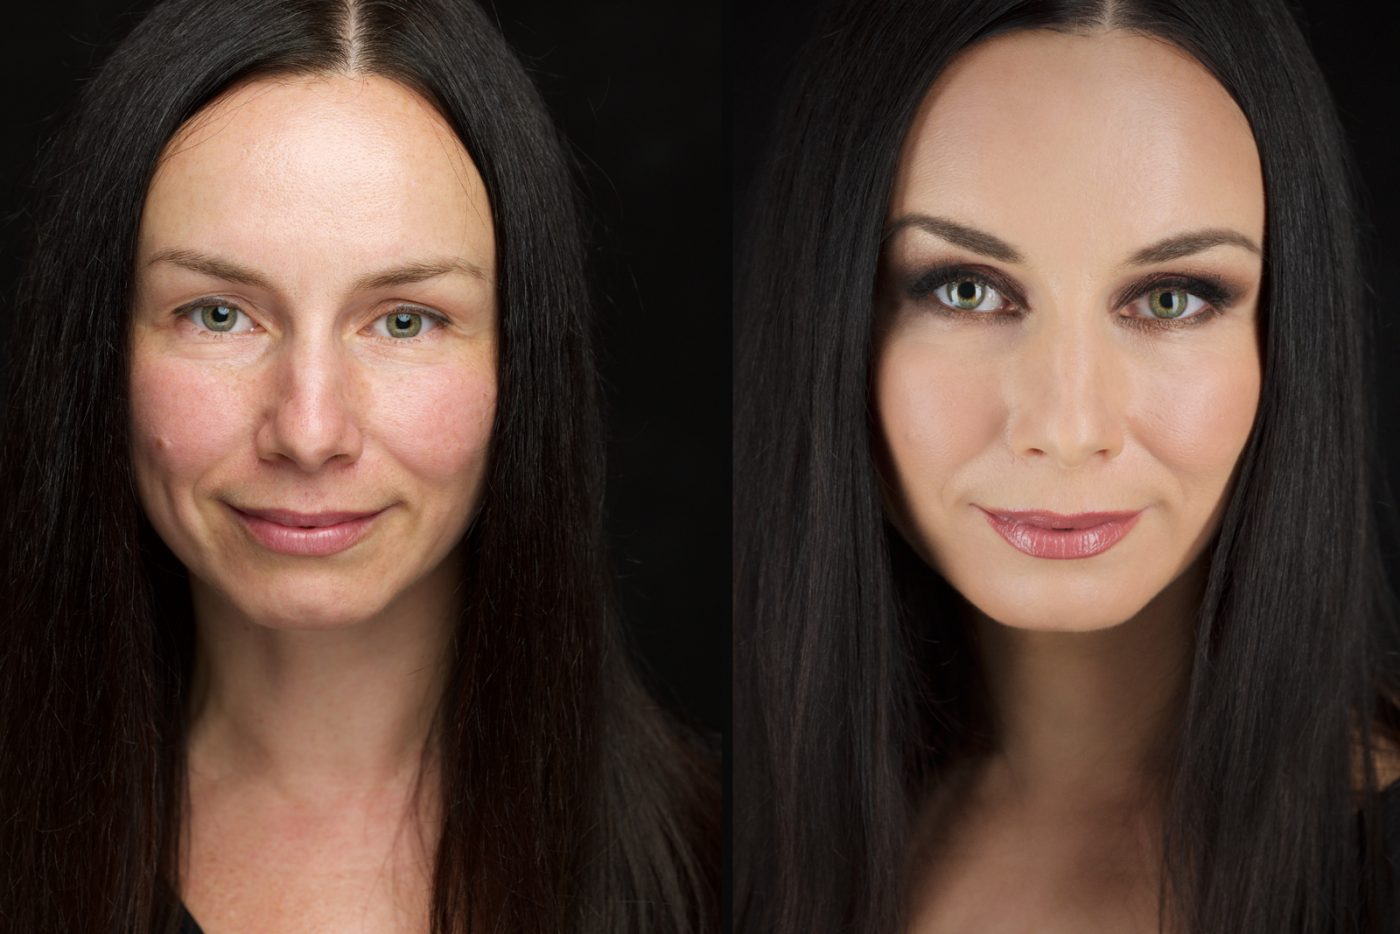 montreal makeup artist. professional makeup services in Montreal